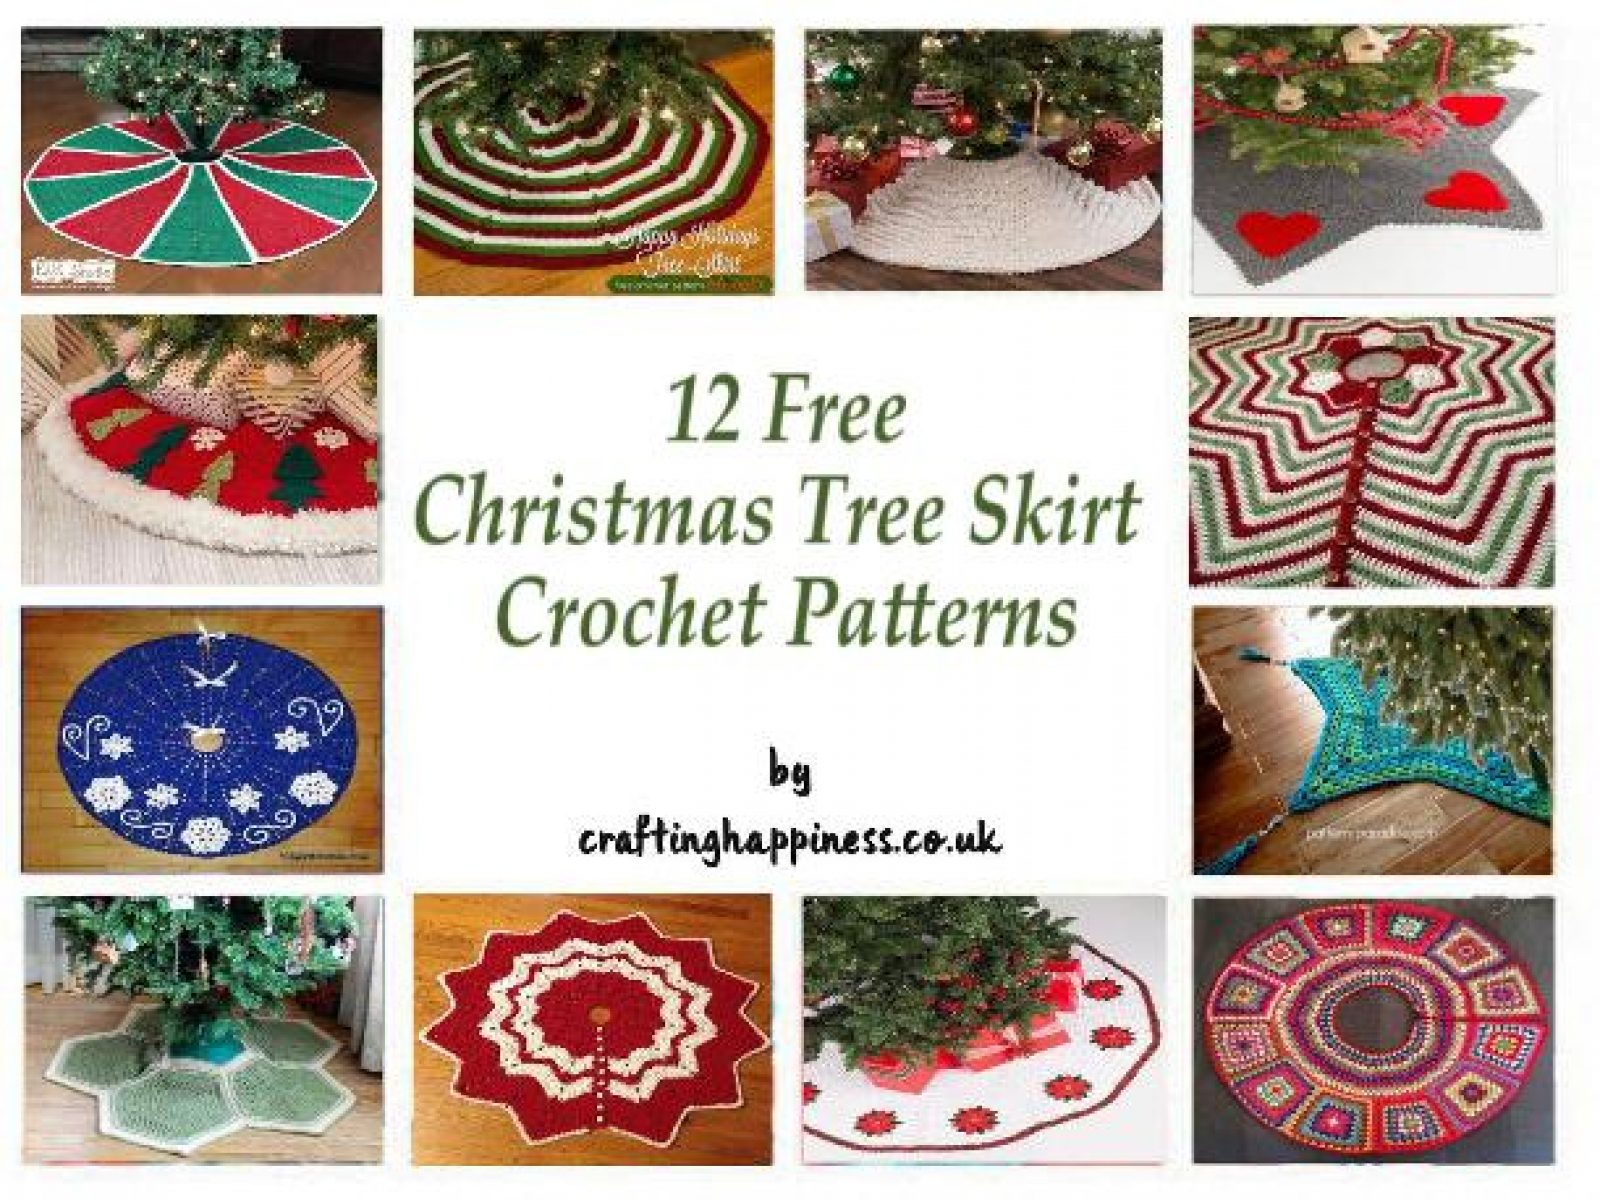 12 Free Christmas Tree Skirt Crochet Patterns